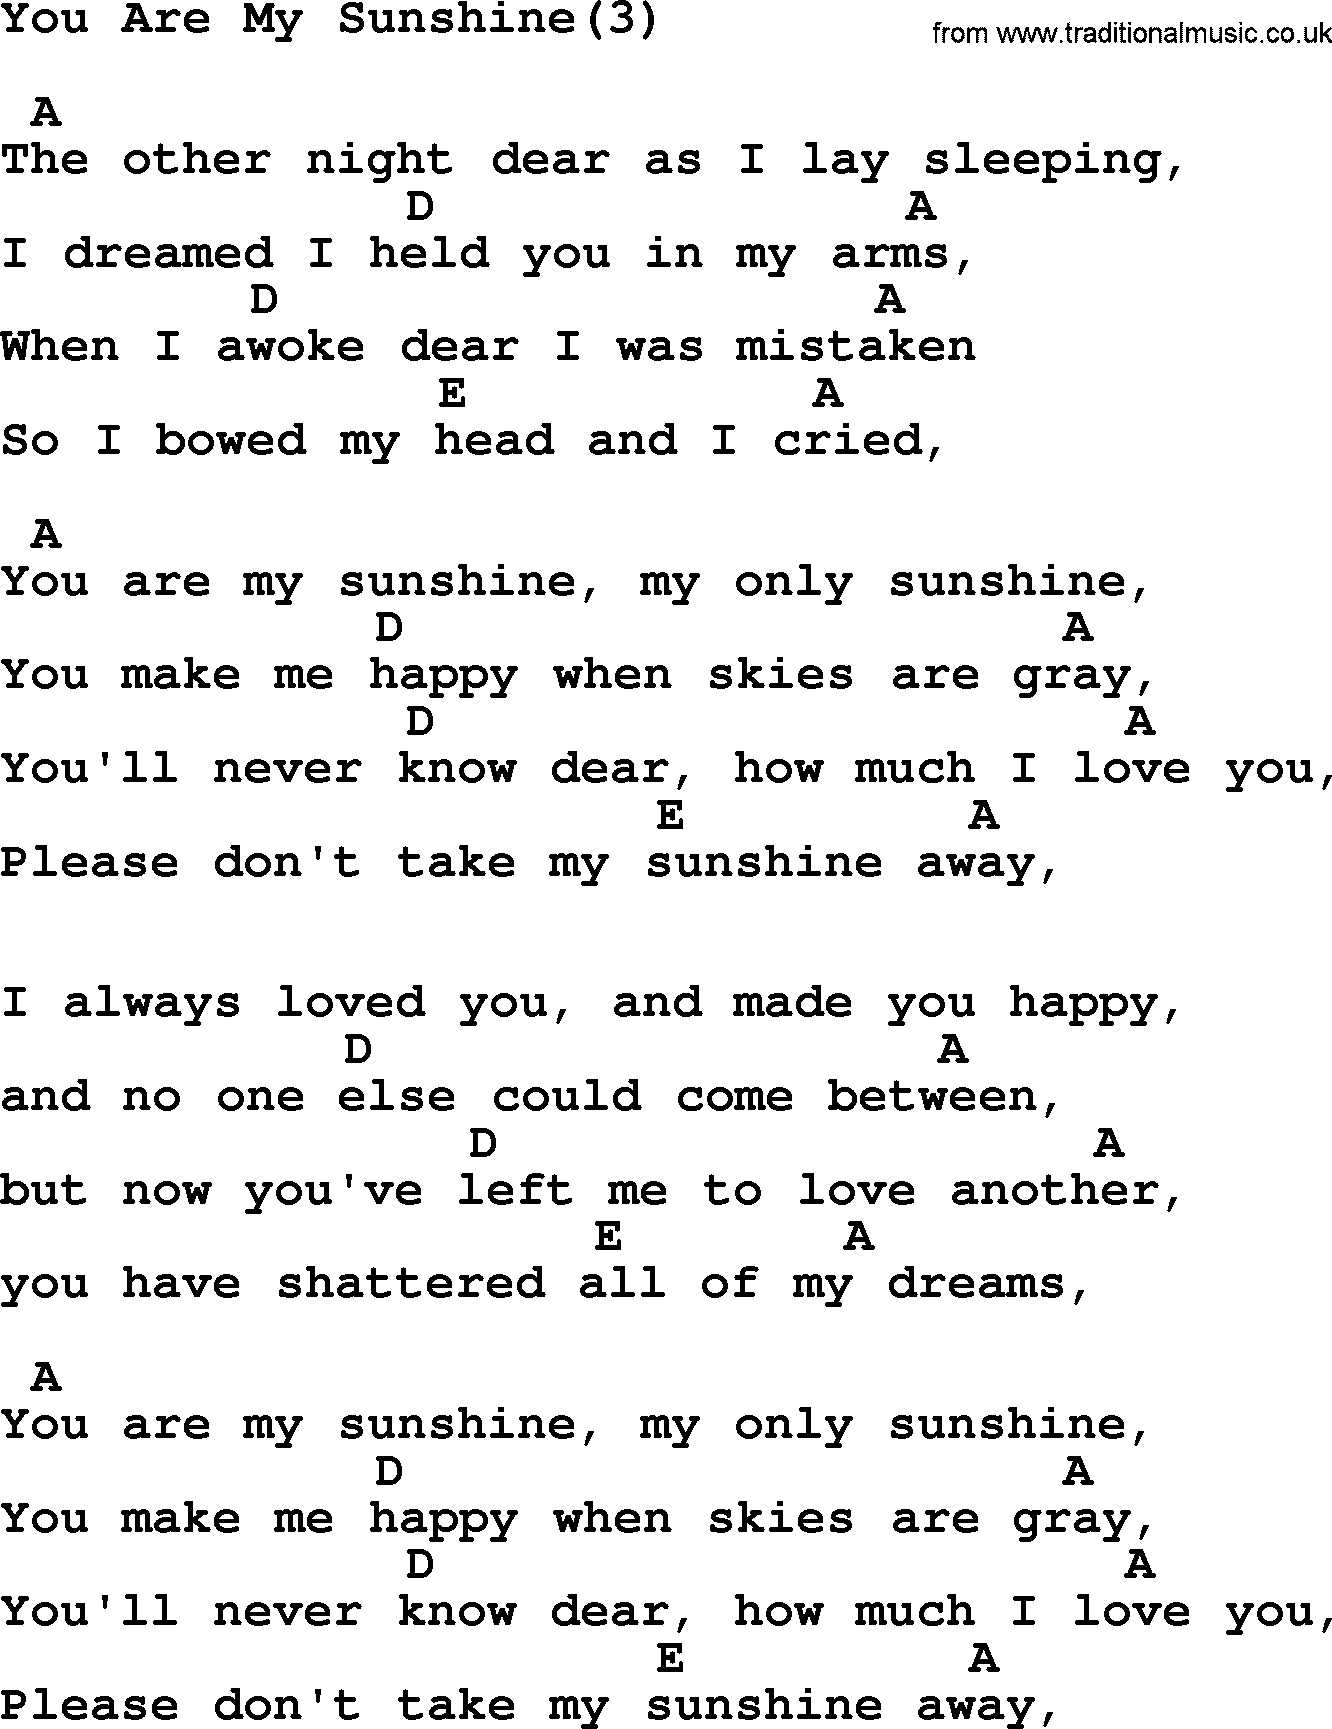 Johnny Cash Song You Are My Sunshine3 Lyrics And Chords